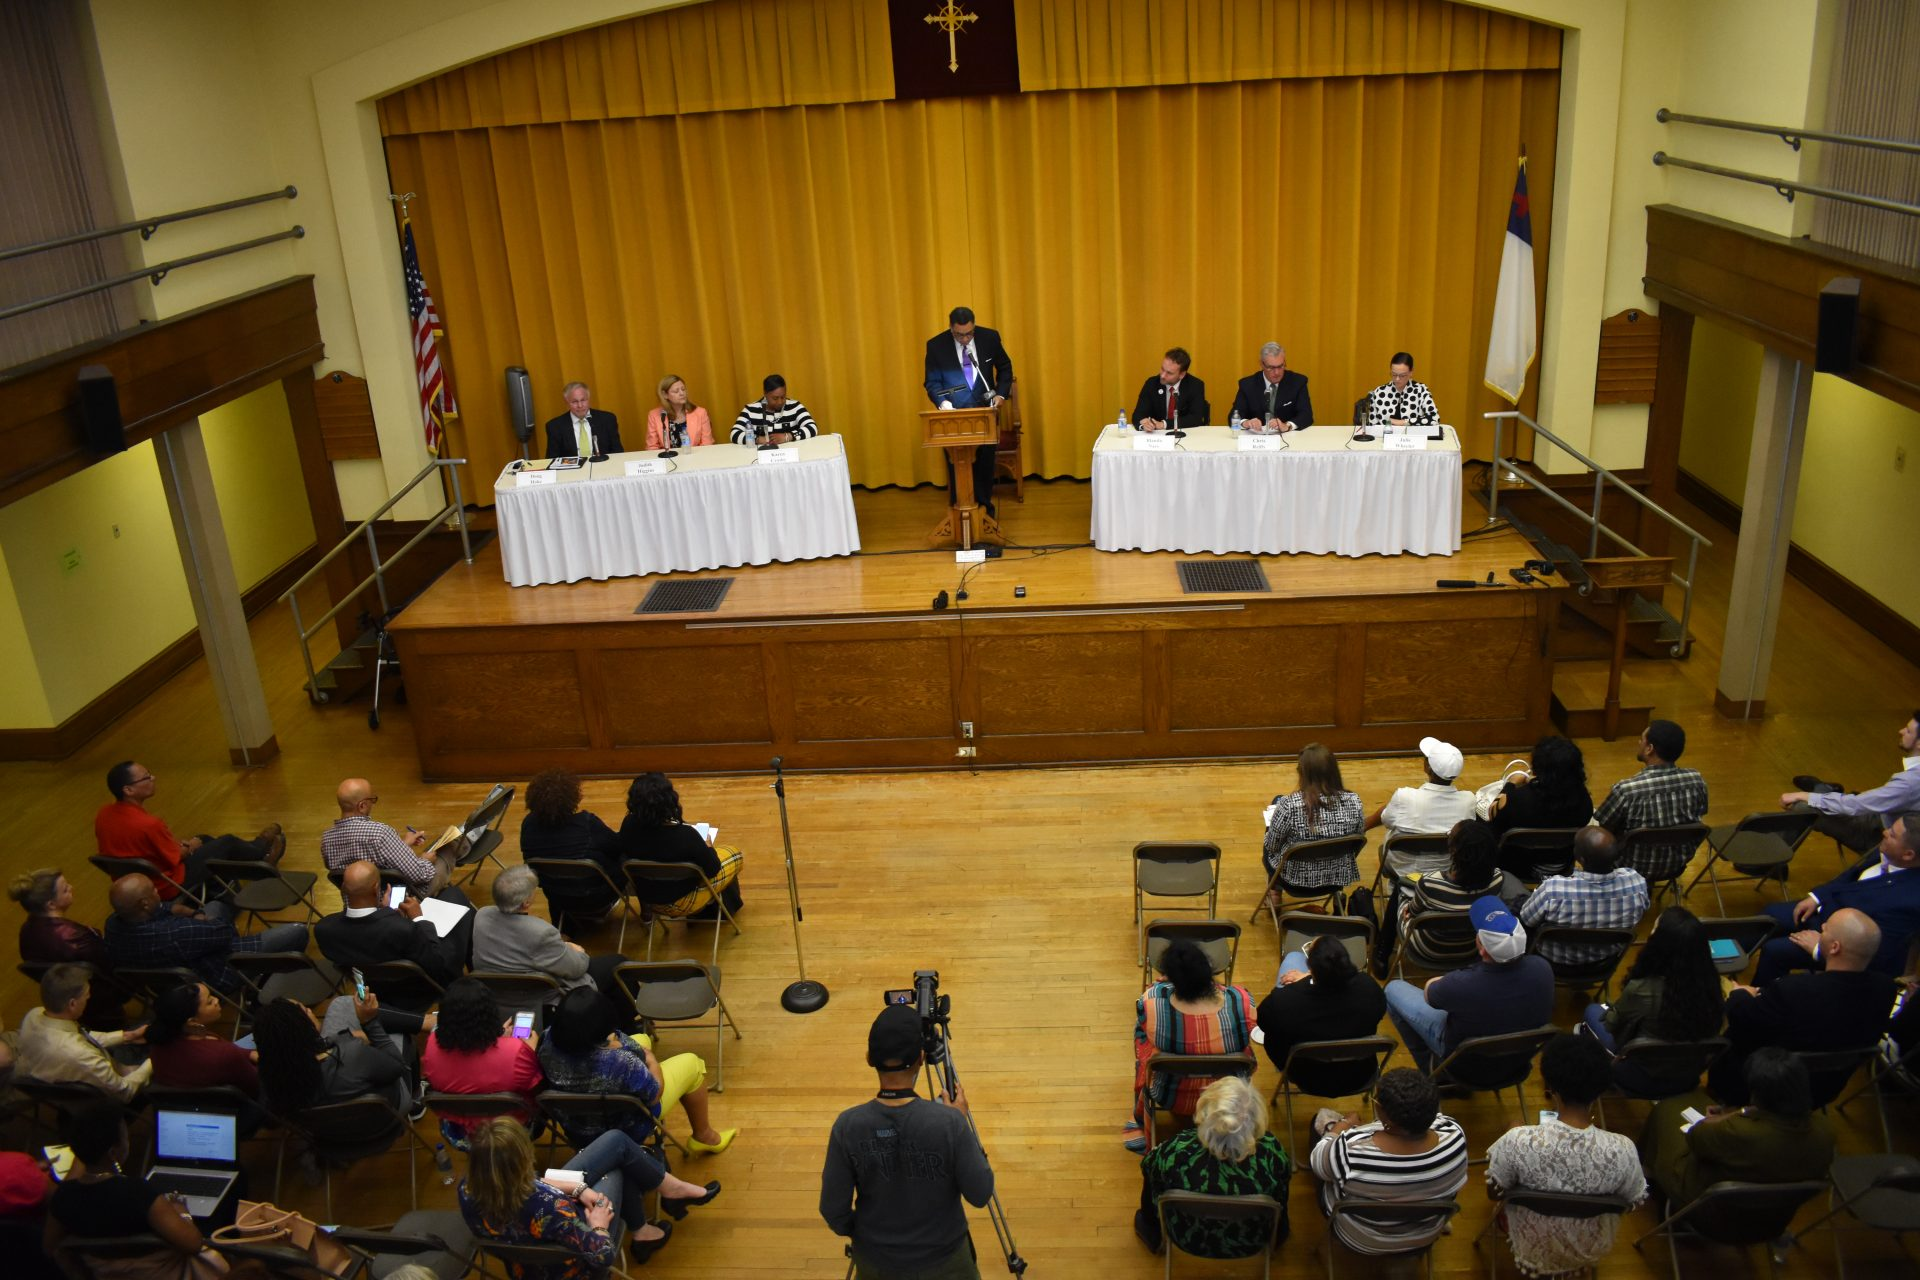 Six candidates for York County commissioner participate in a forum at on April 10, 2019, at Zion United Church of Christ in York.